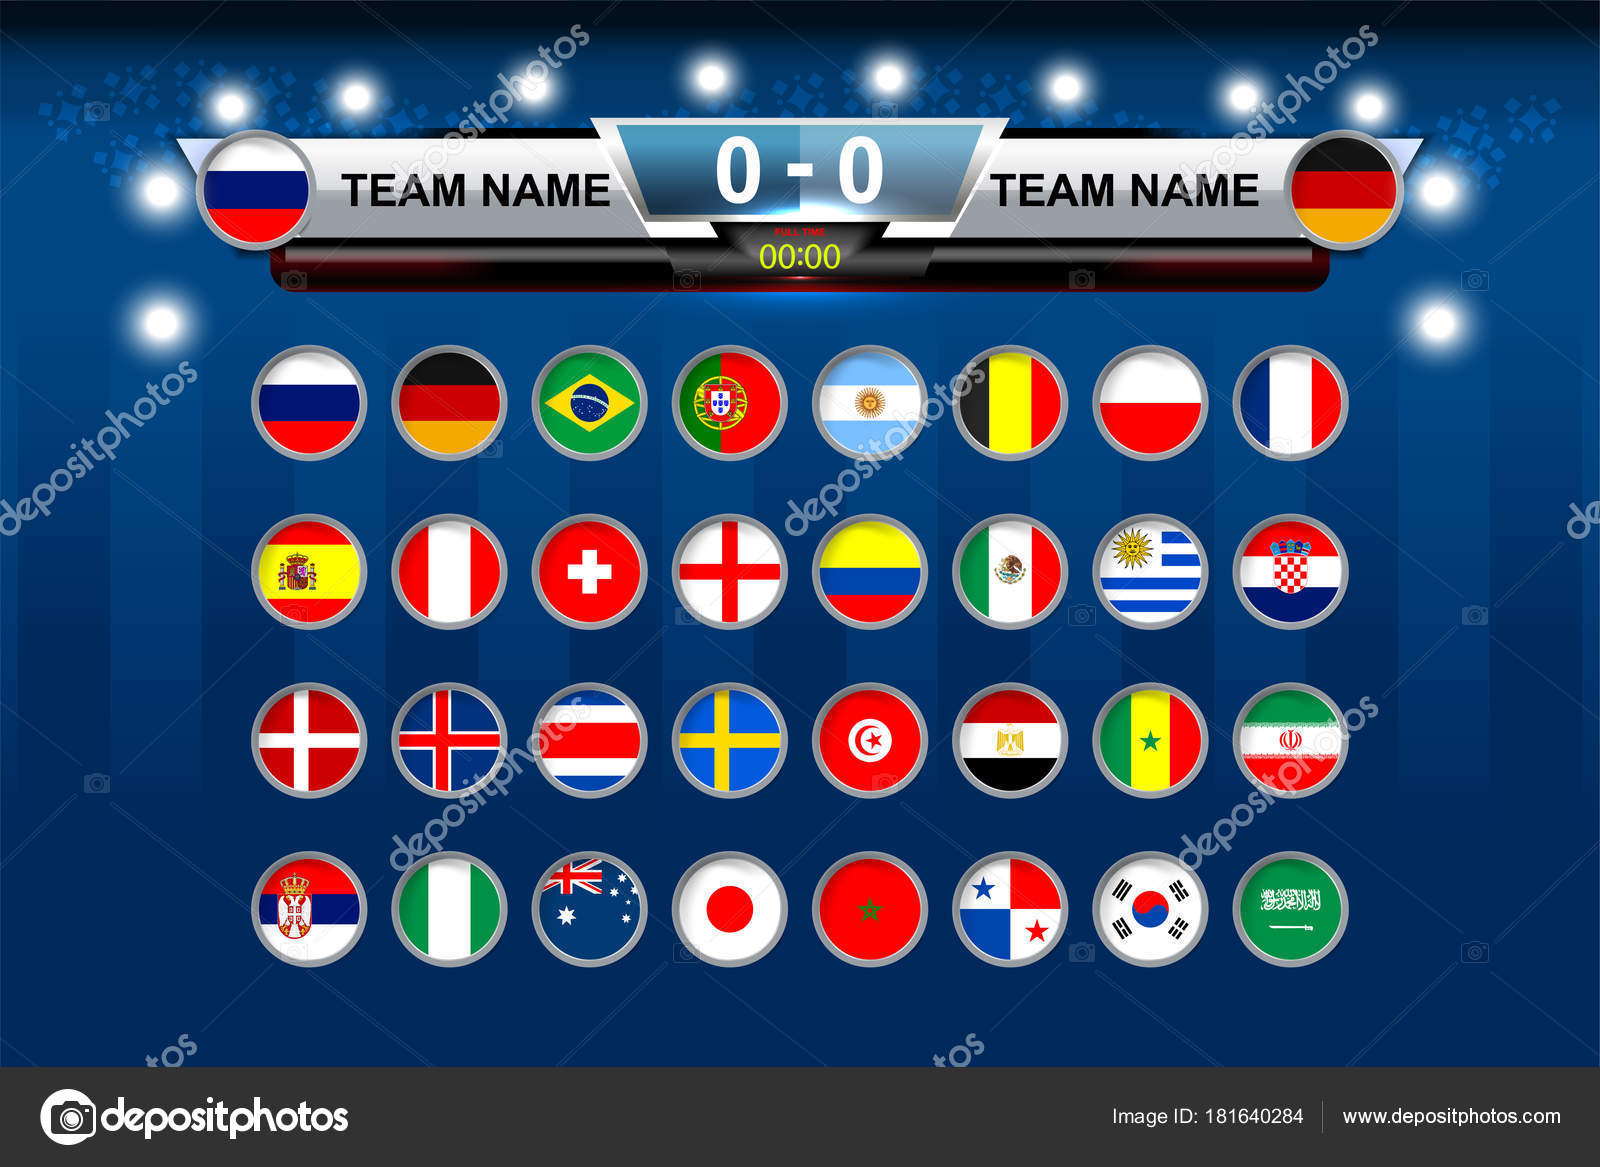 Vector Illustration Graphic Scoreboard Broadcast Lower Thirds Template Soccer World Stock